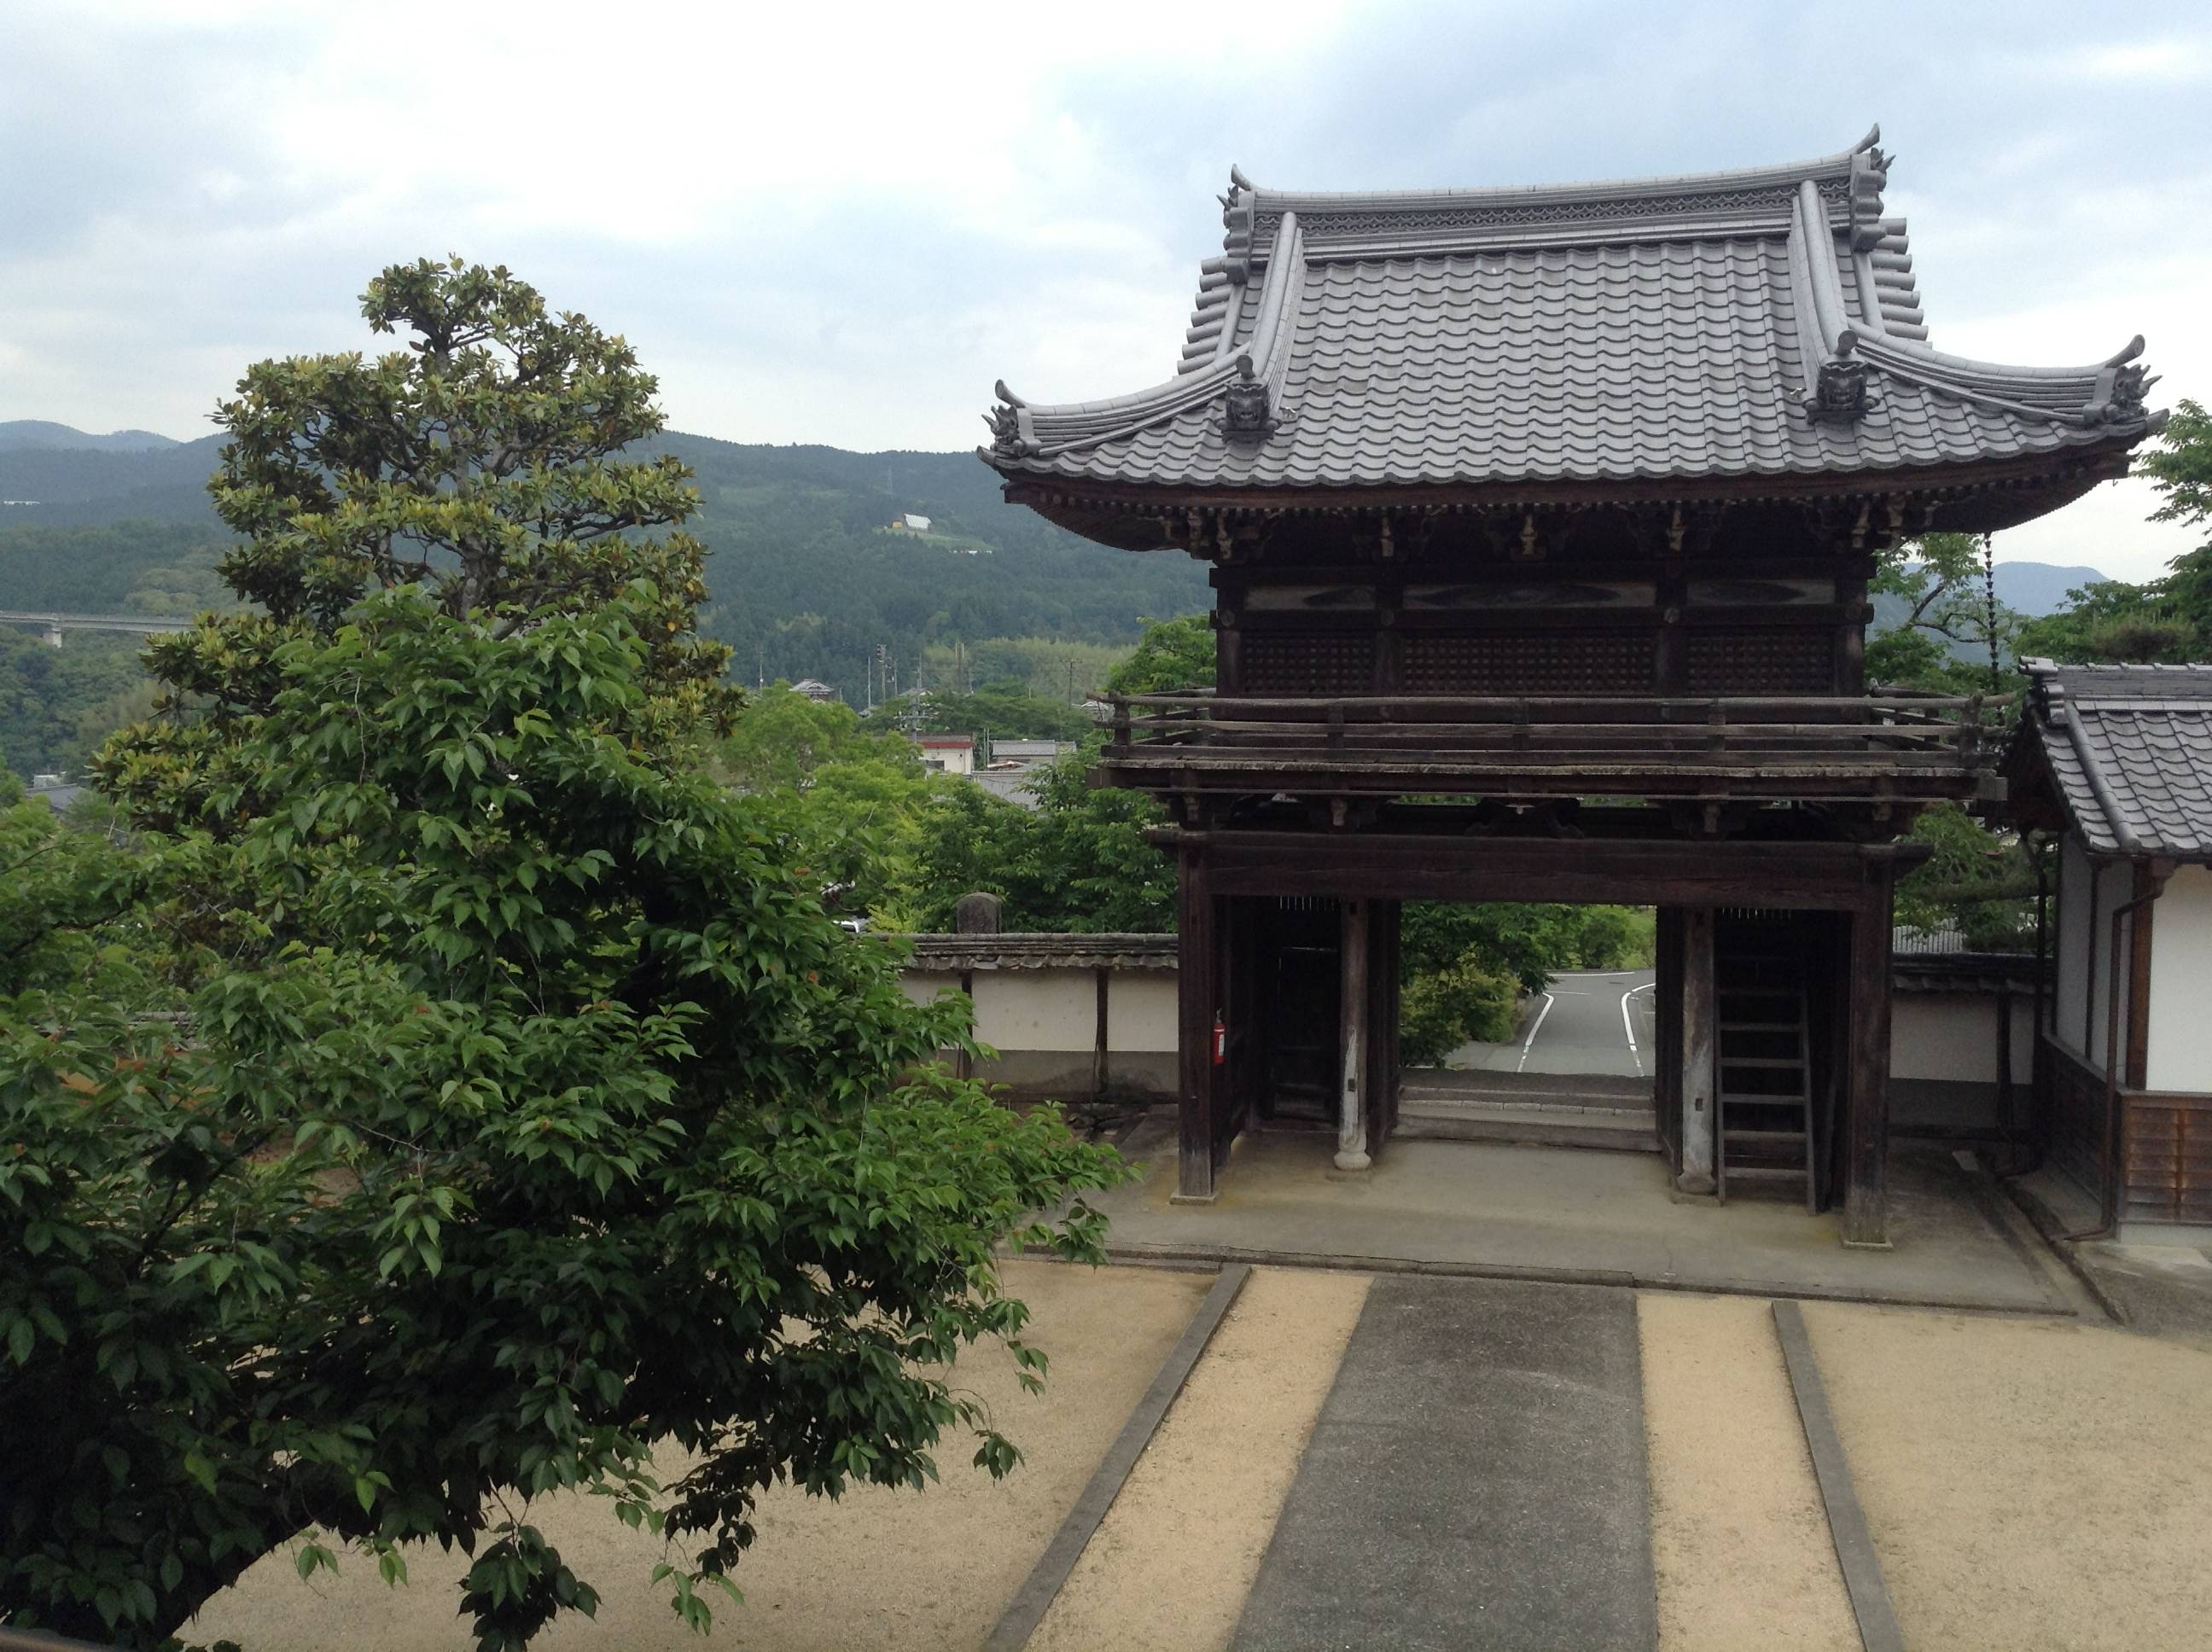 Scene from a small town about 60 minutes outside of Matsuyama, Japan called Uchiko. This is an optional excursion that students may explore as part of CLC's study abroad program to Japan in 2014.